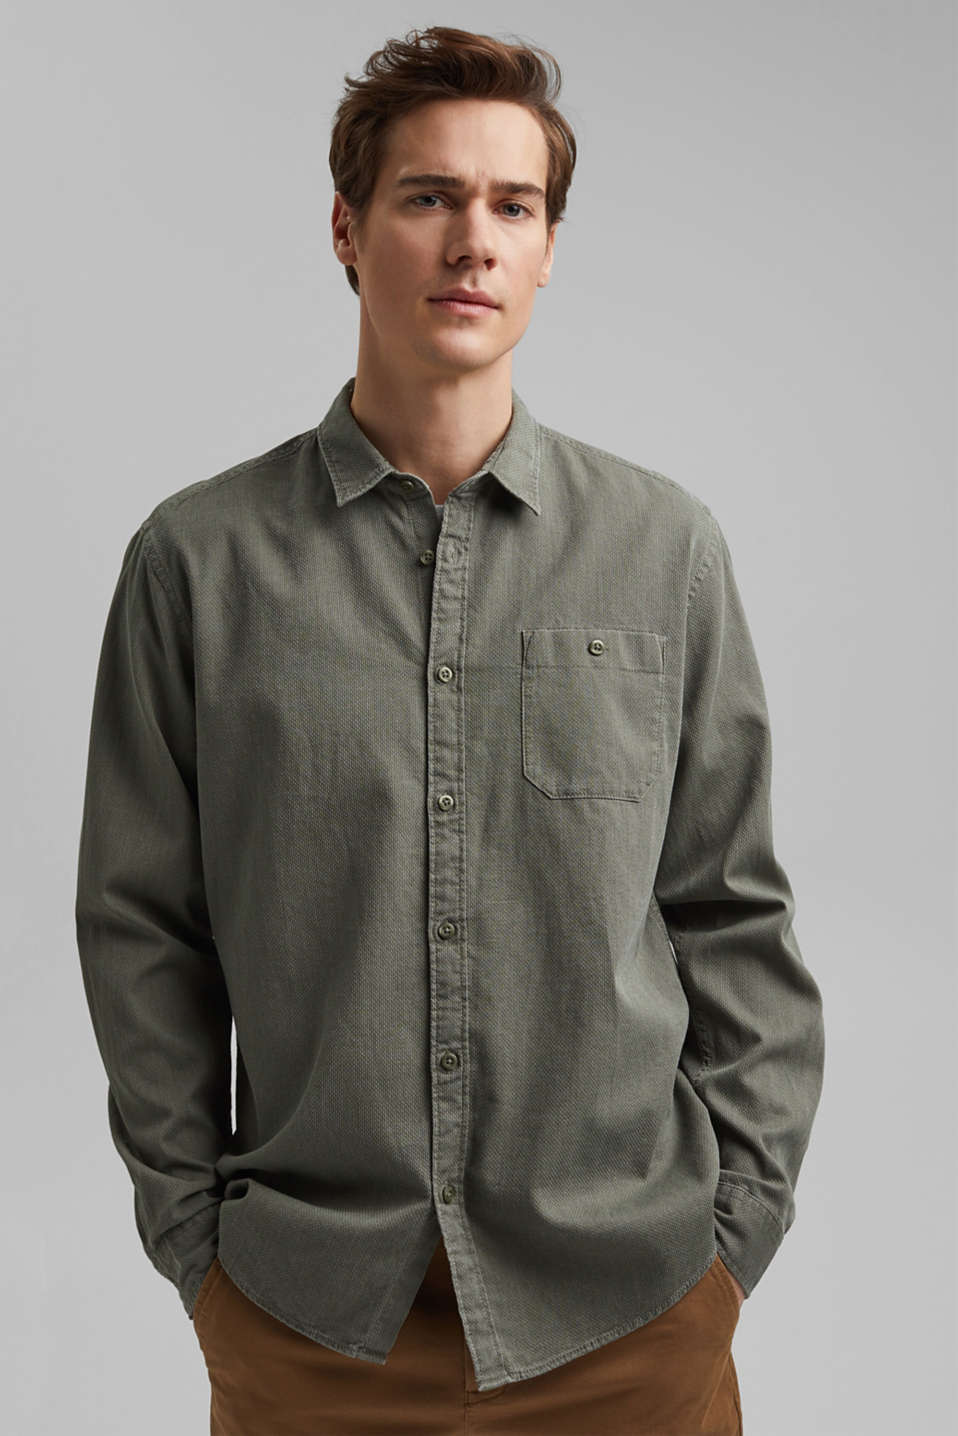 edc - Textured shirt made of 100% cotton